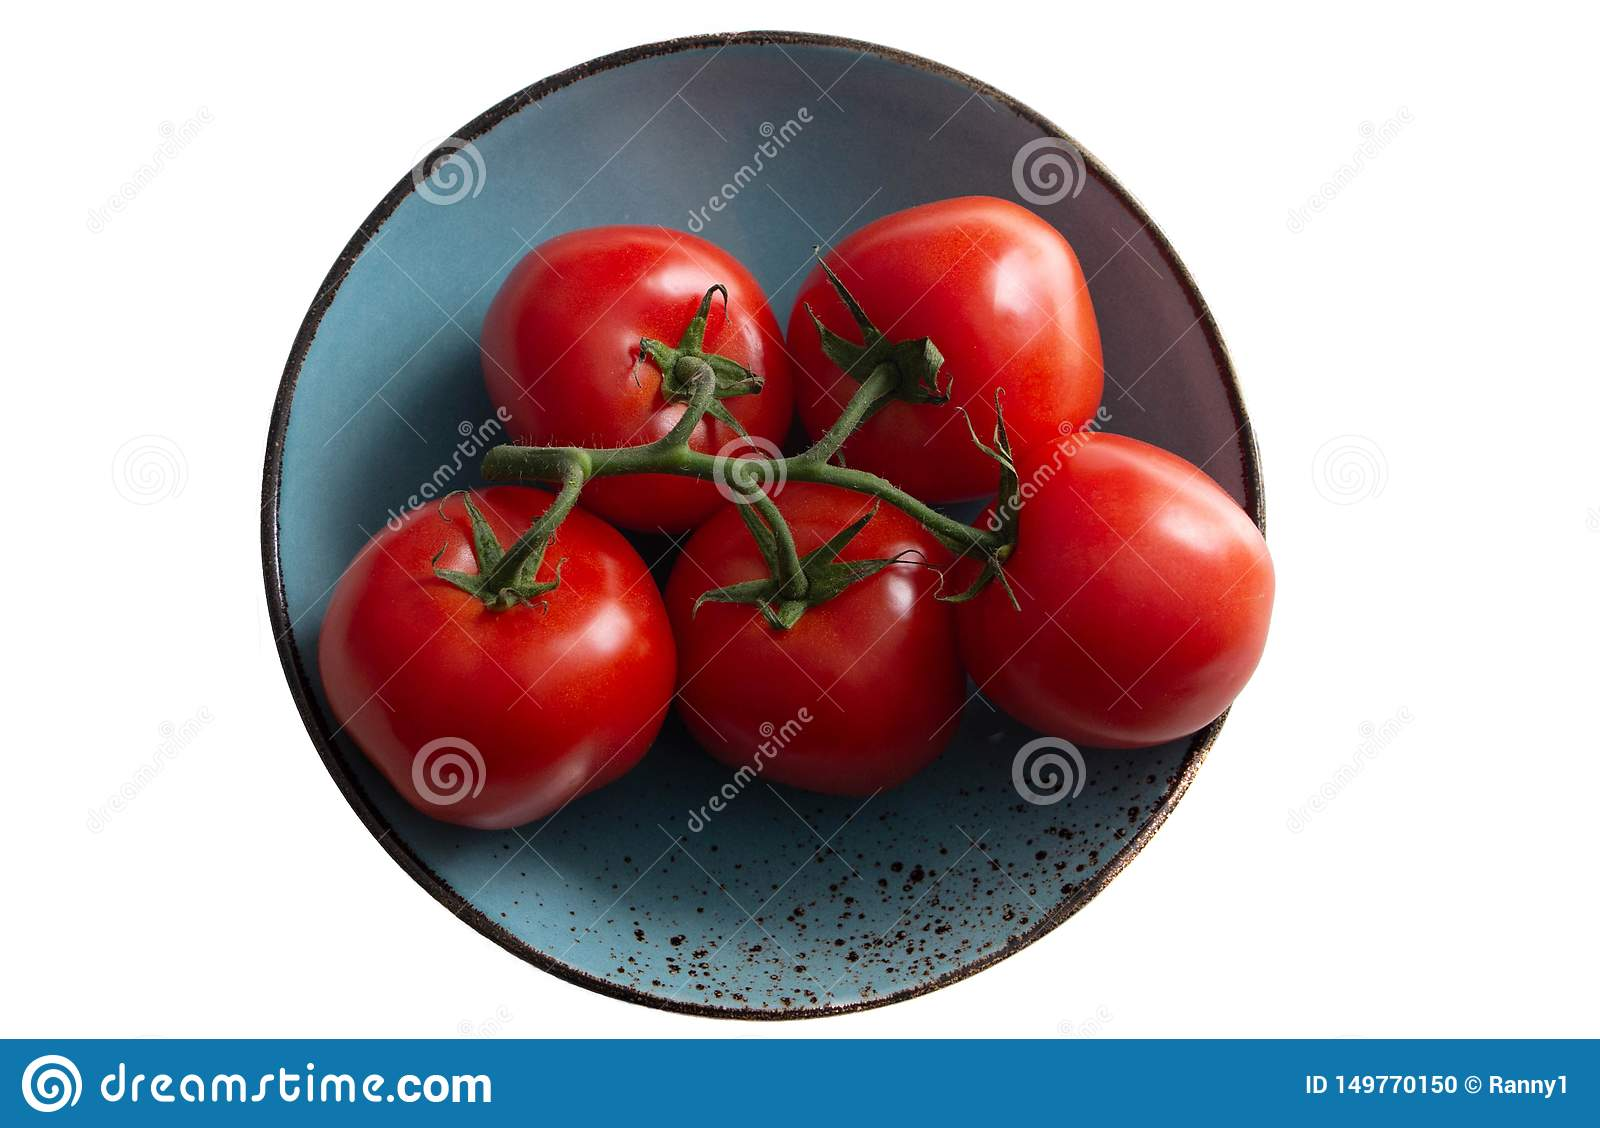 A branch of tomato on a sea-green plate, a turquoise plate. Isolated object